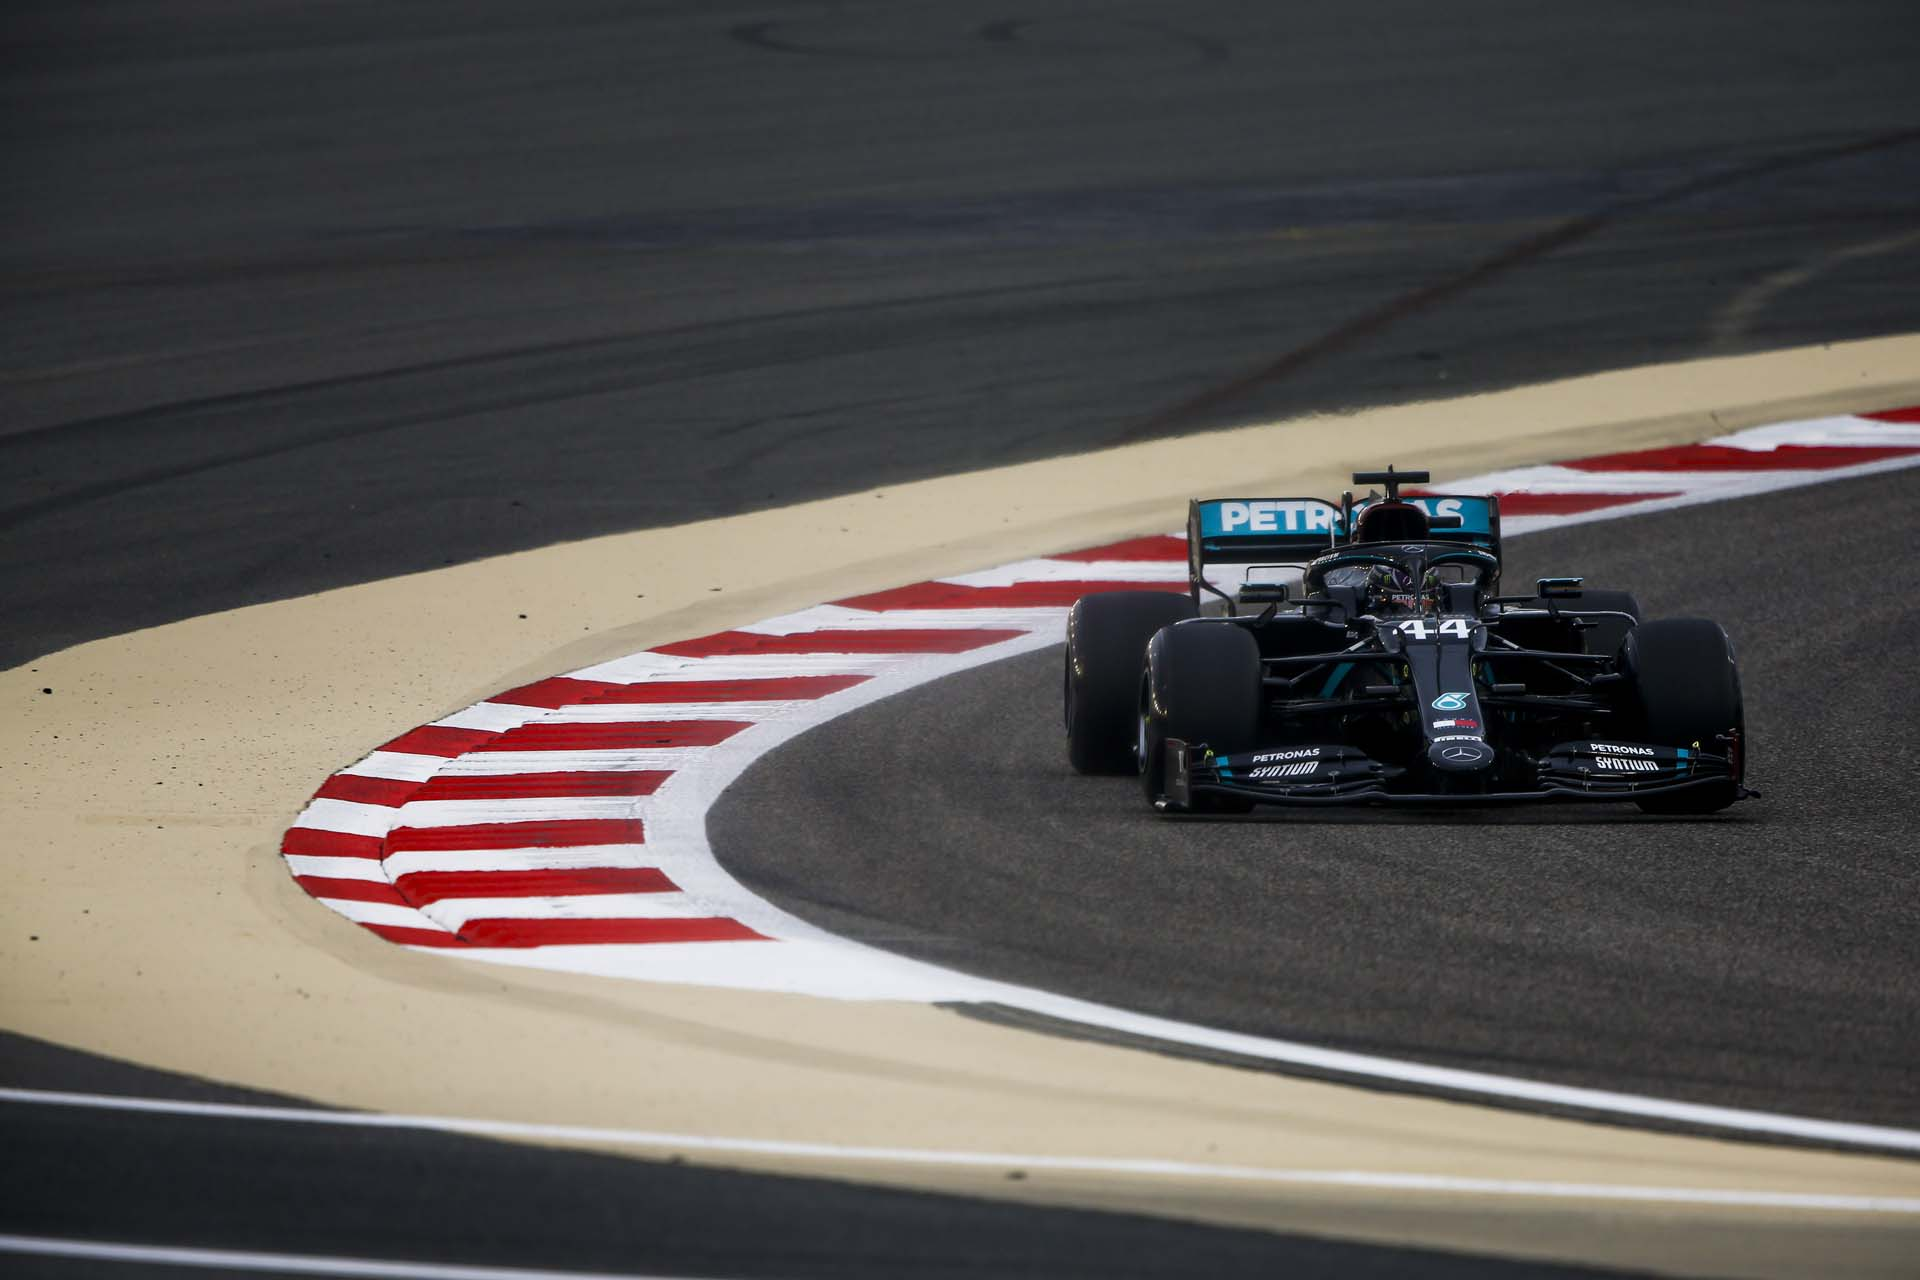 2020 Bahrain Grand Prix, Friday - LAT Images